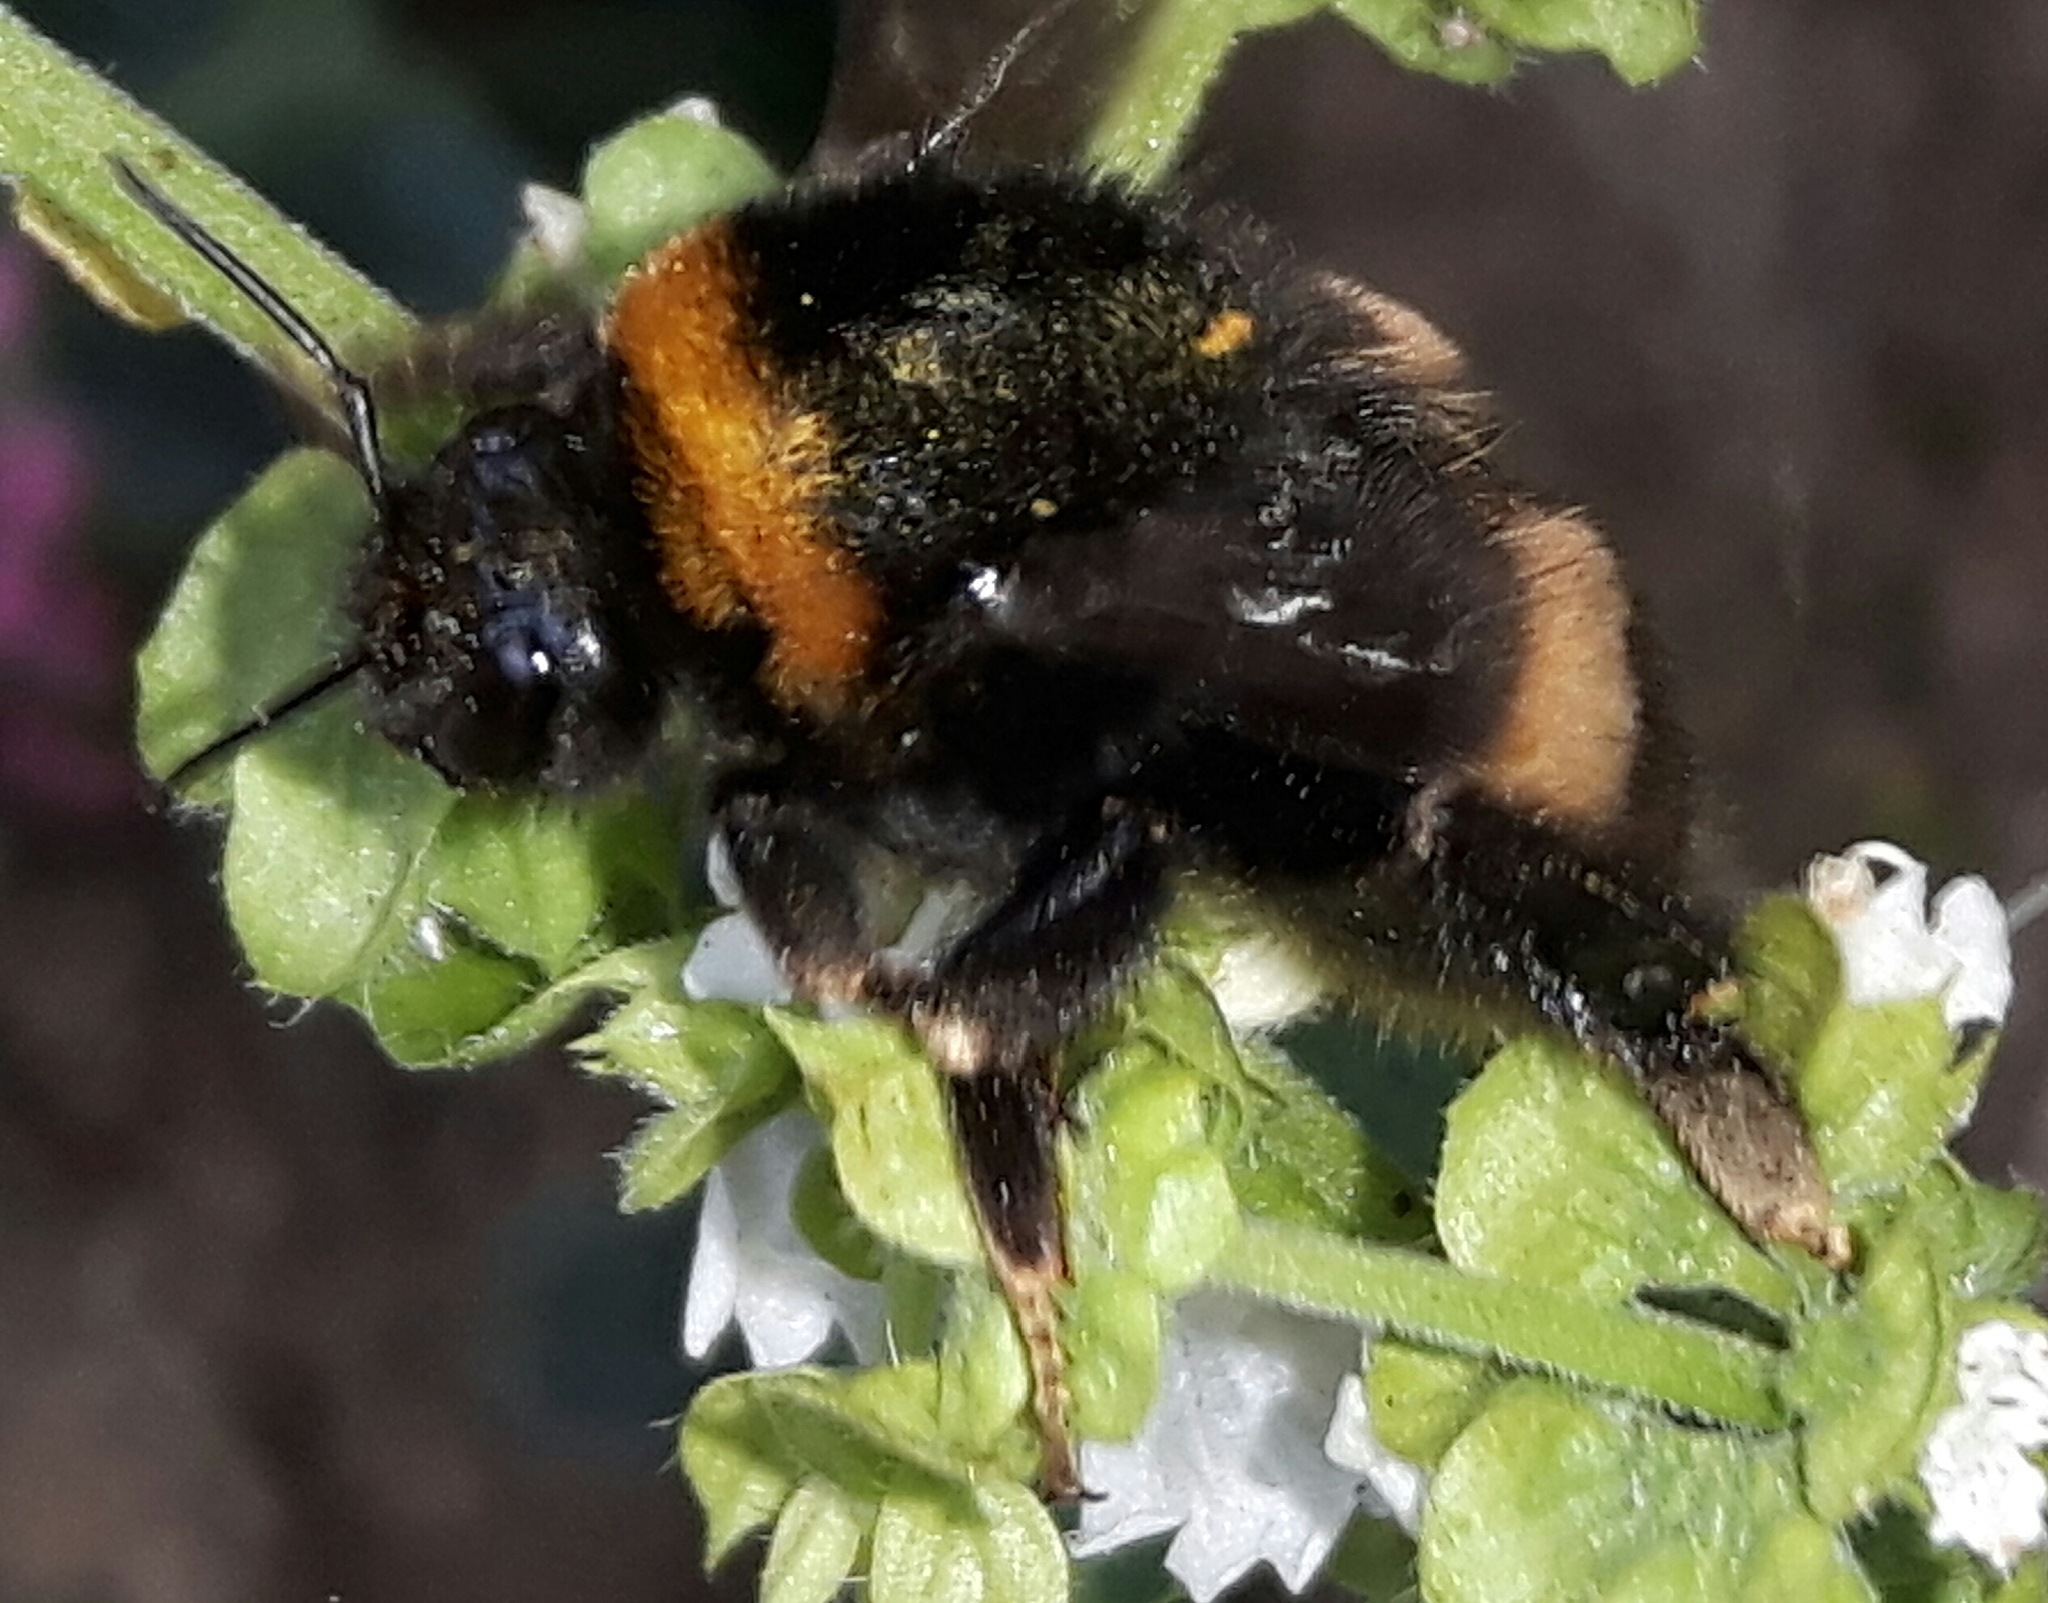 Bumble bee by Mevludin_Hasanovic